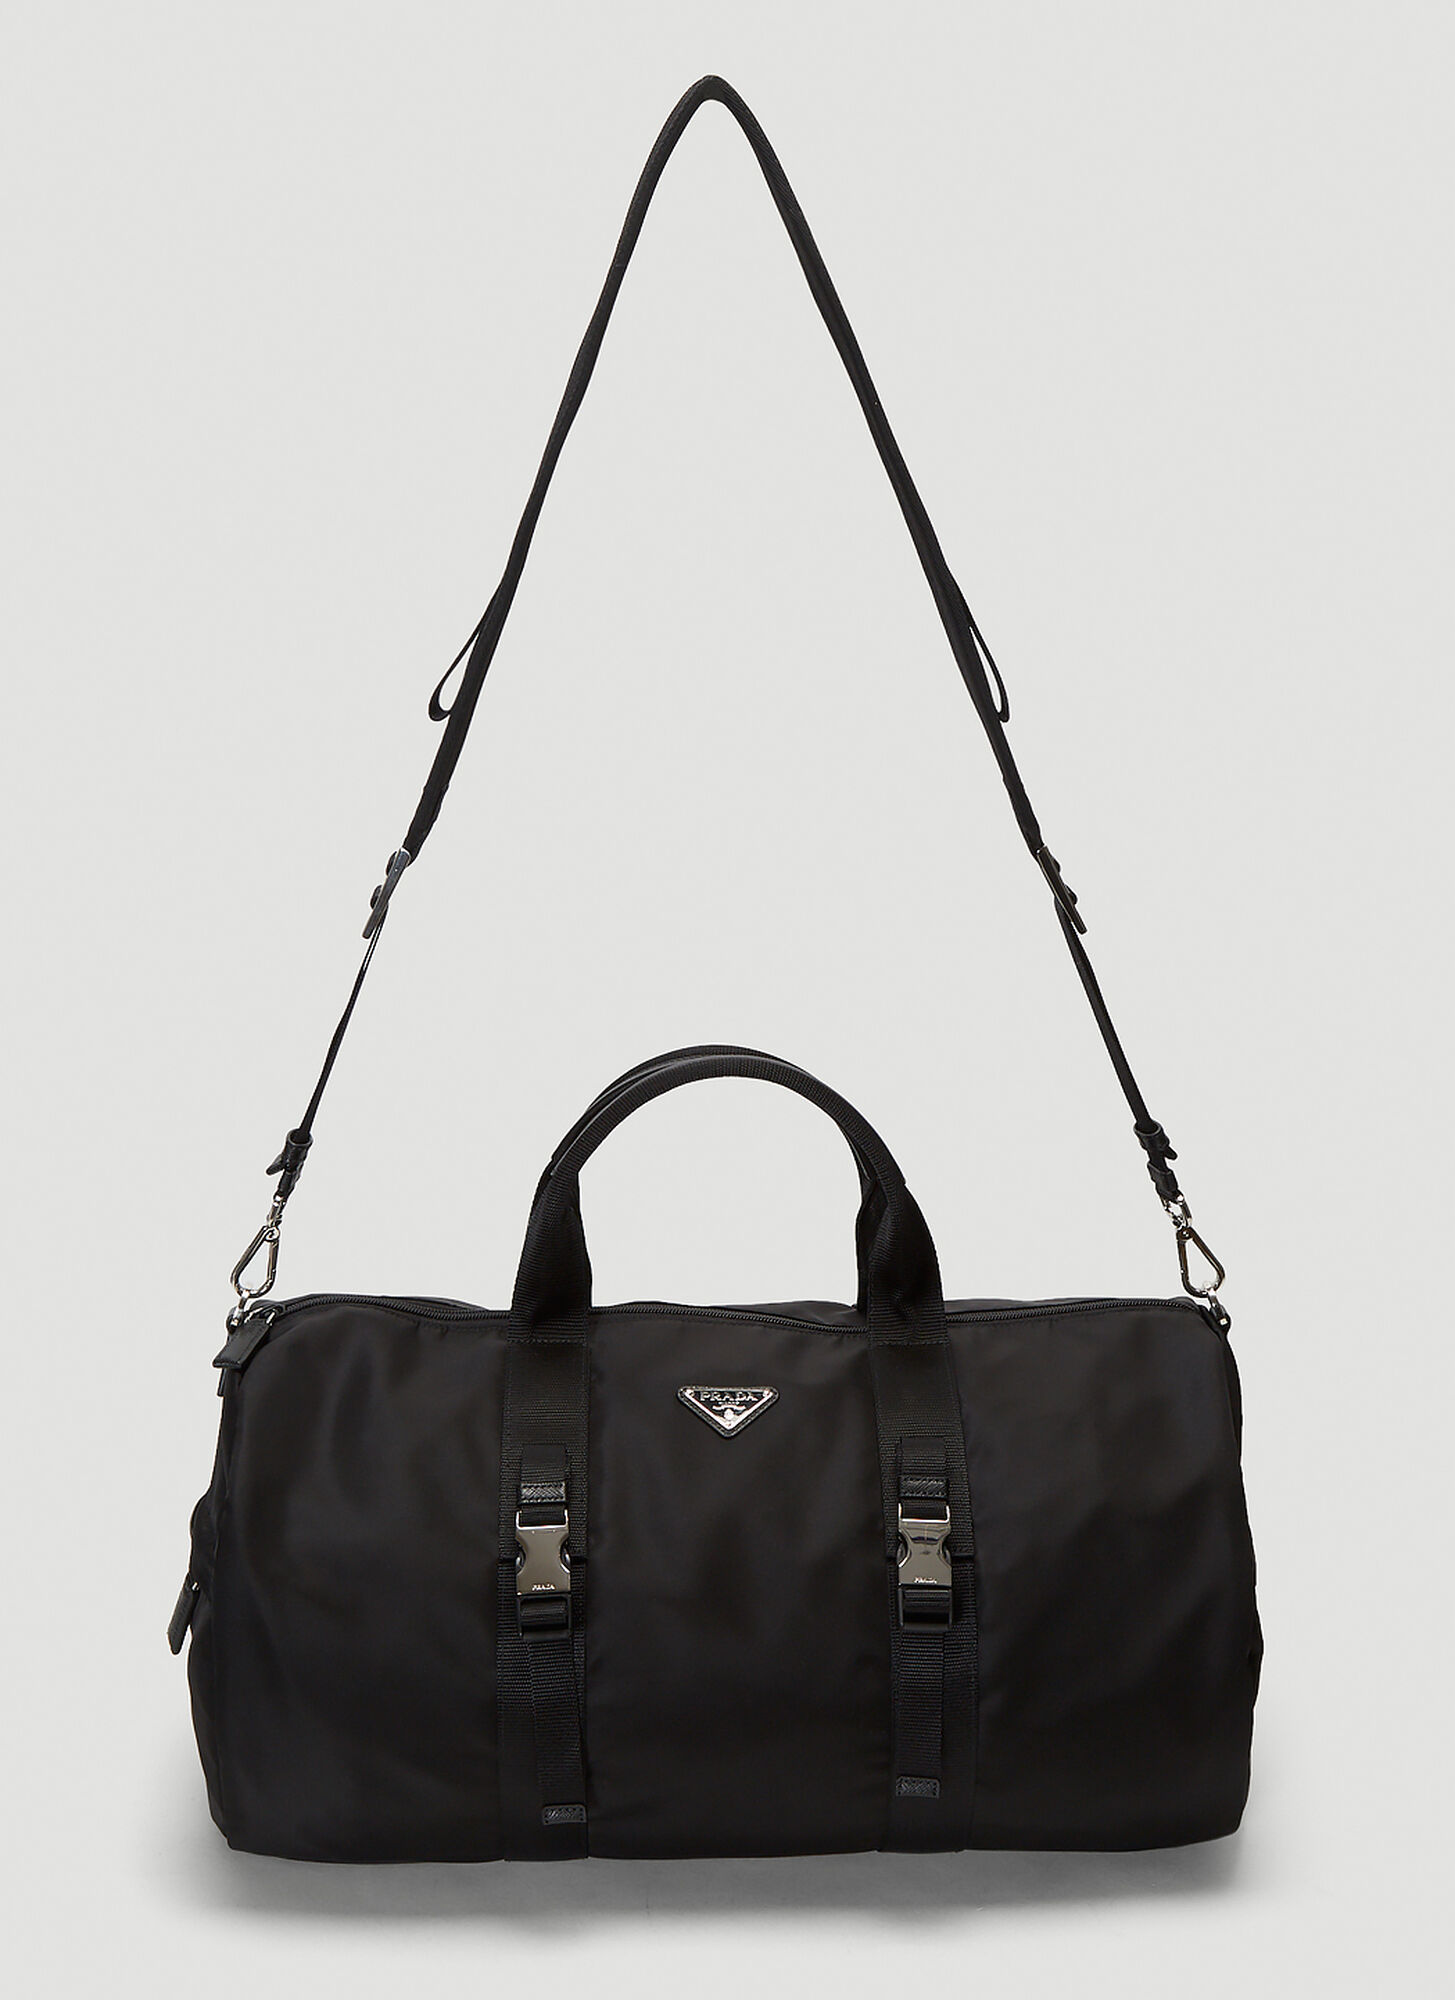 Prada Duffle Bag in Black size One Size